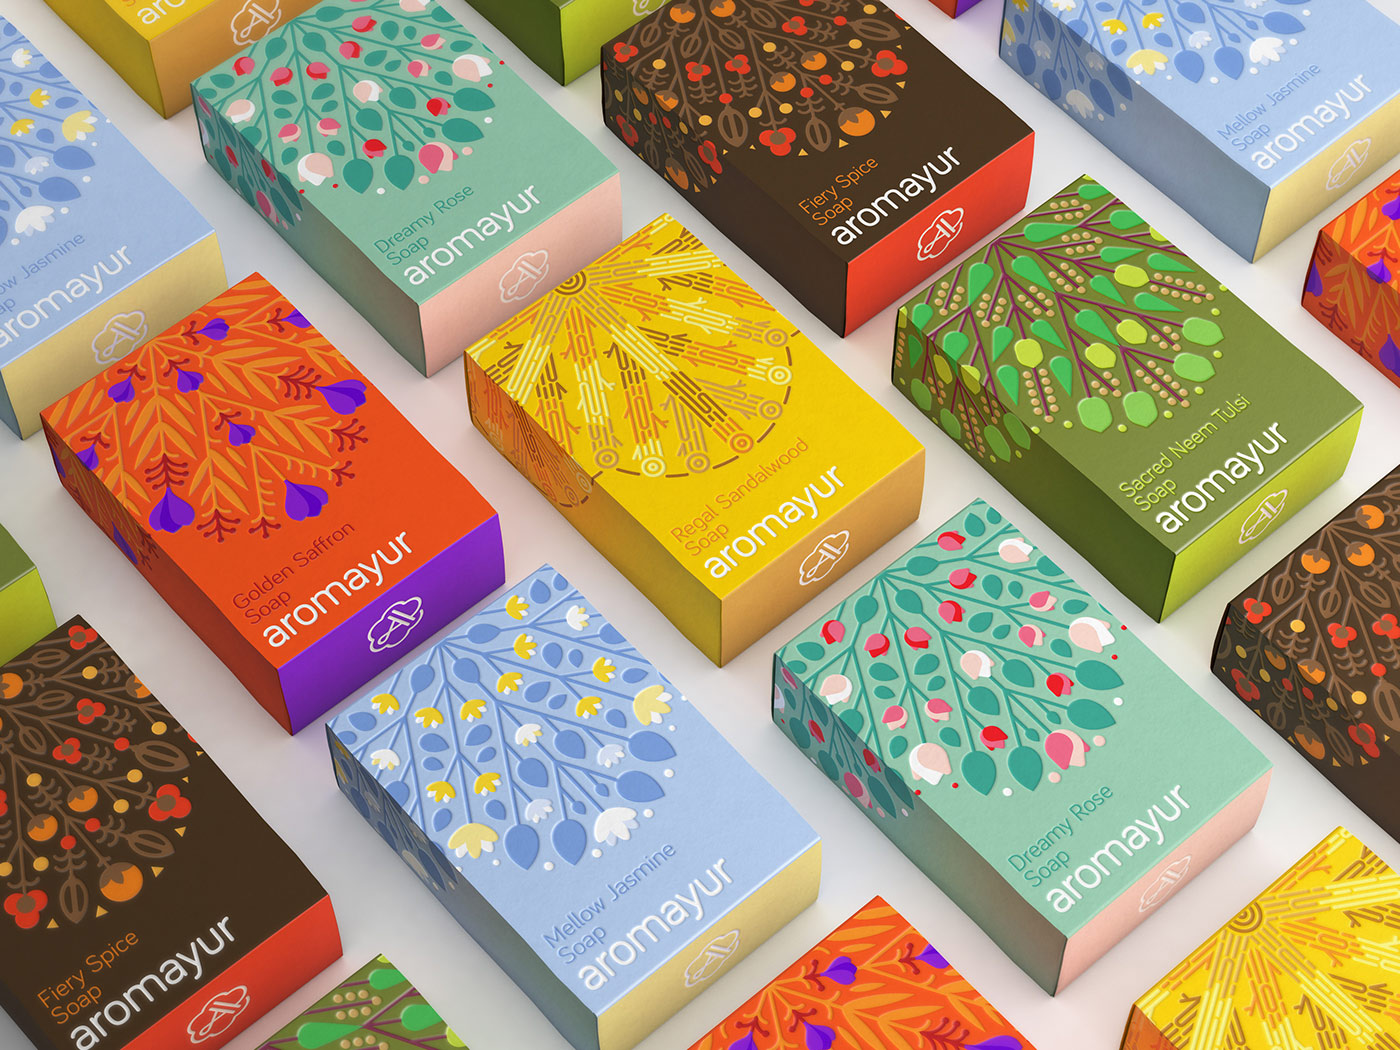 A Premium, Natural and Vibrant Brand - Identity & Packaging Design by Zooscope 3